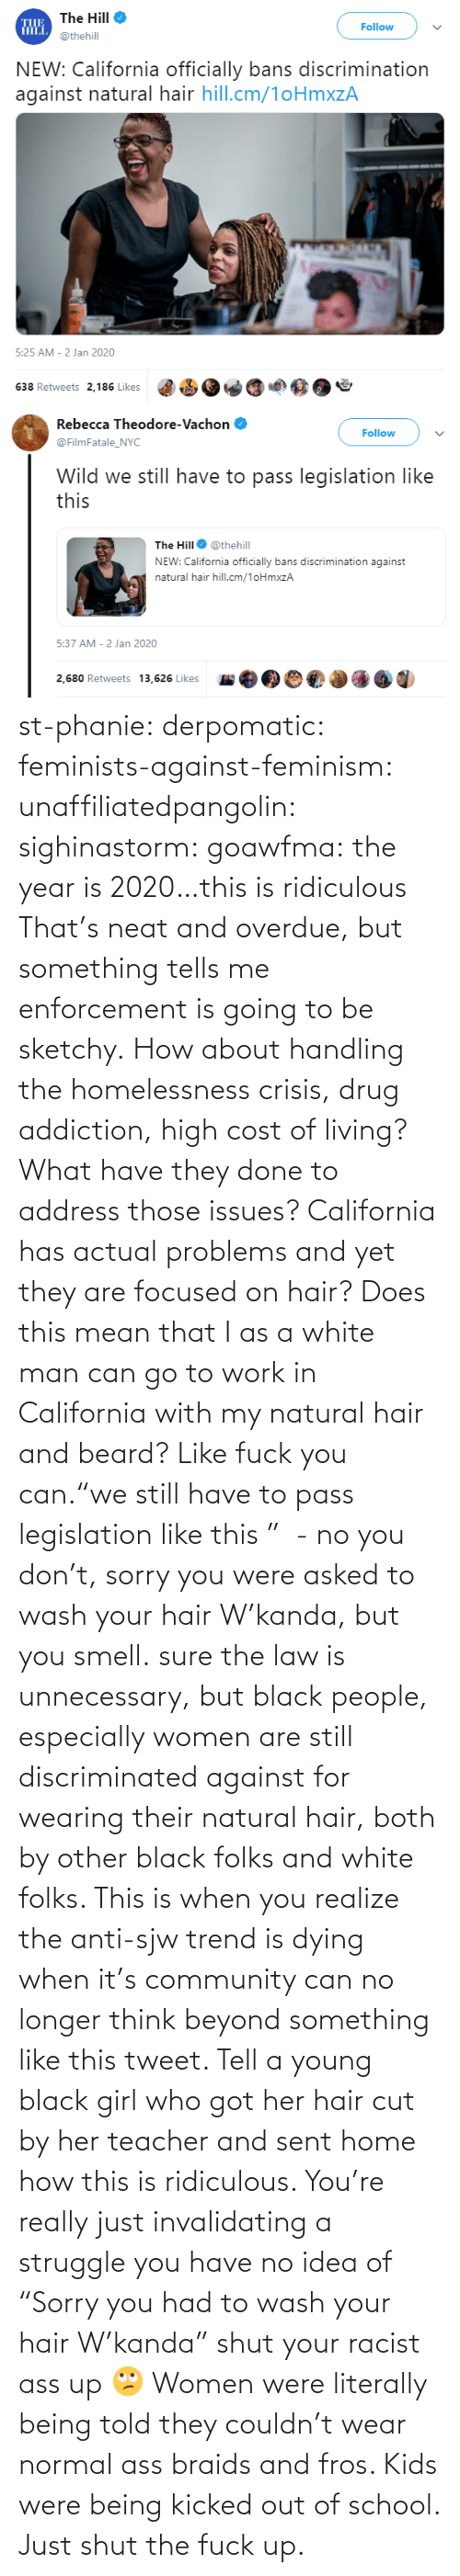 "tumblr: st-phanie:  derpomatic:  feminists-against-feminism:  unaffiliatedpangolin:  sighinastorm:   goawfma: the year is 2020…this is ridiculous That's neat and overdue, but something tells me enforcement is going to be sketchy.    How about handling the homelessness crisis, drug addiction, high cost of living? What have they done to address those issues? California has actual problems and yet they are focused on hair?  Does this mean that I as a white man can go to work in California with my natural hair and beard?  Like fuck you can.""we still have to pass legislation like this ""  - no you don't, sorry you were asked to wash your hair W'kanda, but you smell.    sure the law is unnecessary, but black people, especially women are still discriminated against for wearing their natural hair, both by other black folks and white folks. This is when you realize the anti-sjw trend is dying when it's community can no longer think beyond something like this tweet. Tell a young black girl who got her hair cut by her teacher and sent home how this is ridiculous. You're really just invalidating a struggle you have no idea of   ""Sorry you had to wash your hair W'kanda"" shut your racist ass up 🙄 Women were literally being told they couldn't wear normal ass braids and fros. Kids were being kicked out of school. Just shut the fuck up."